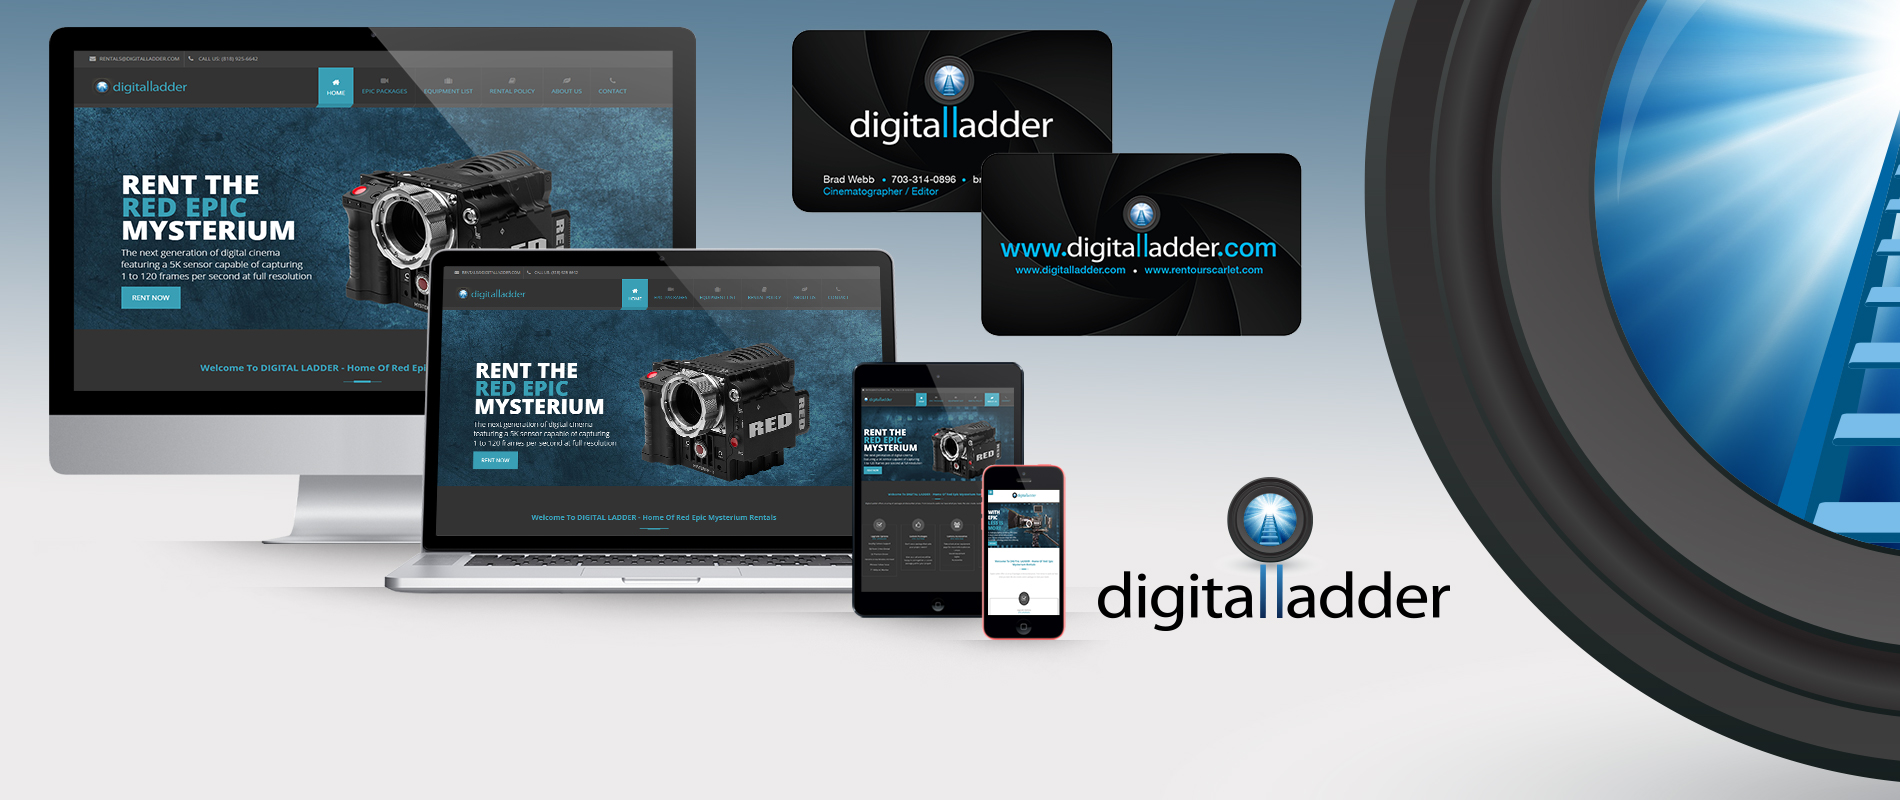 Digital Ladder Brand Development and Logo Design